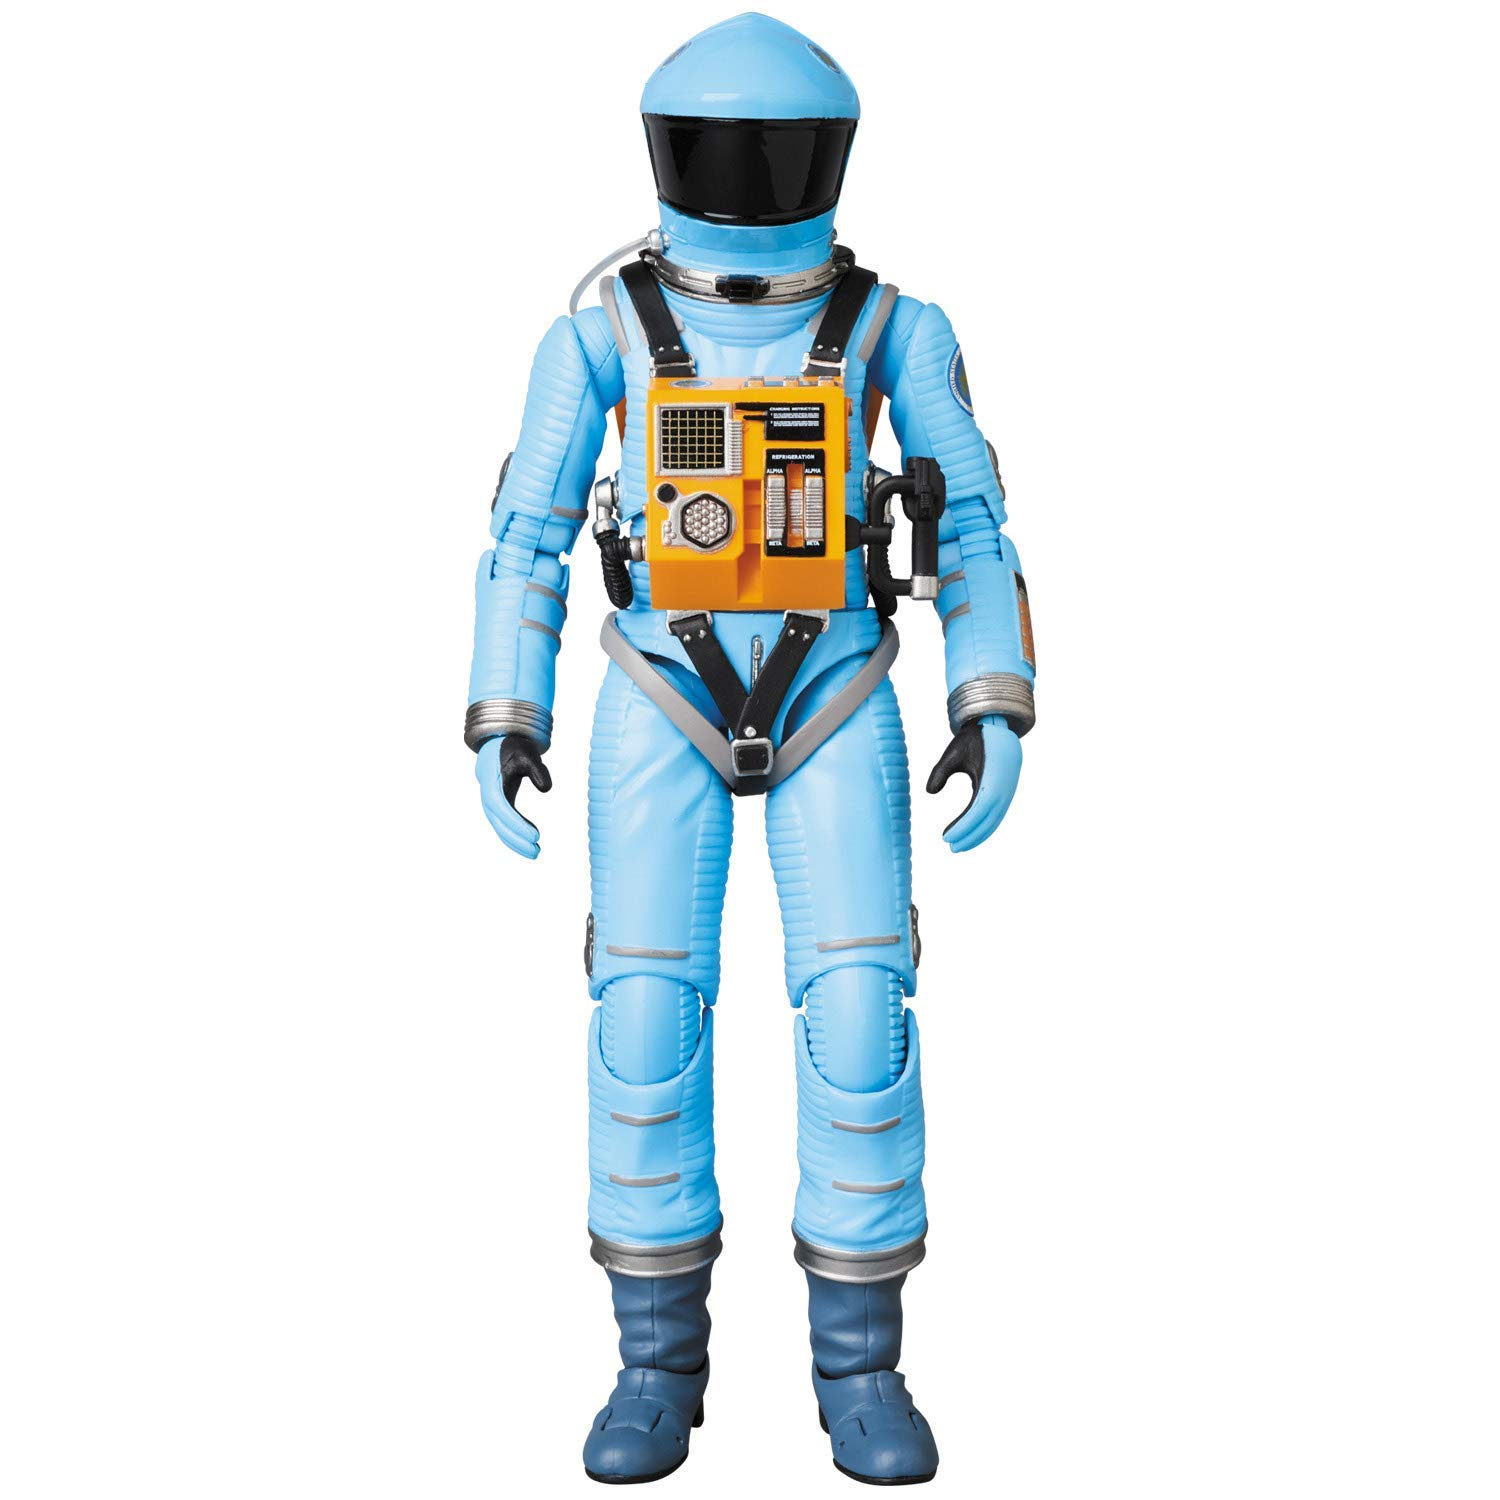 Medicom MAFEX 090 2001 A Space Odyssey Space Suit Light blu Version